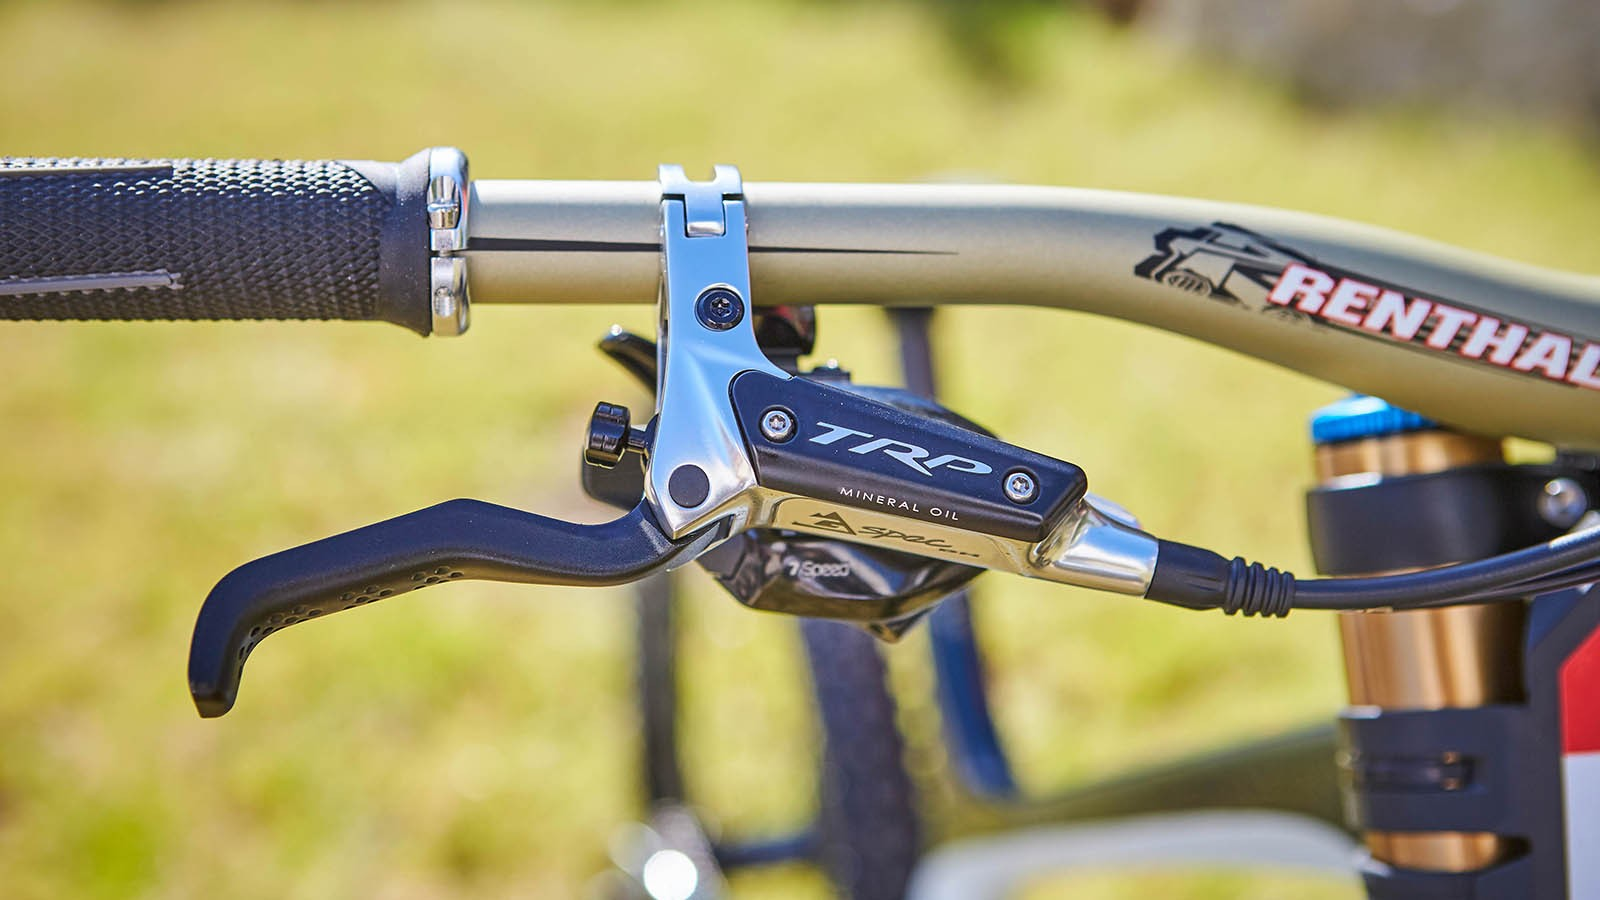 The CF Pro Race bike uses Gwin's signature TRP G-Spec DH brakes complete with 203mm rotors front and rear